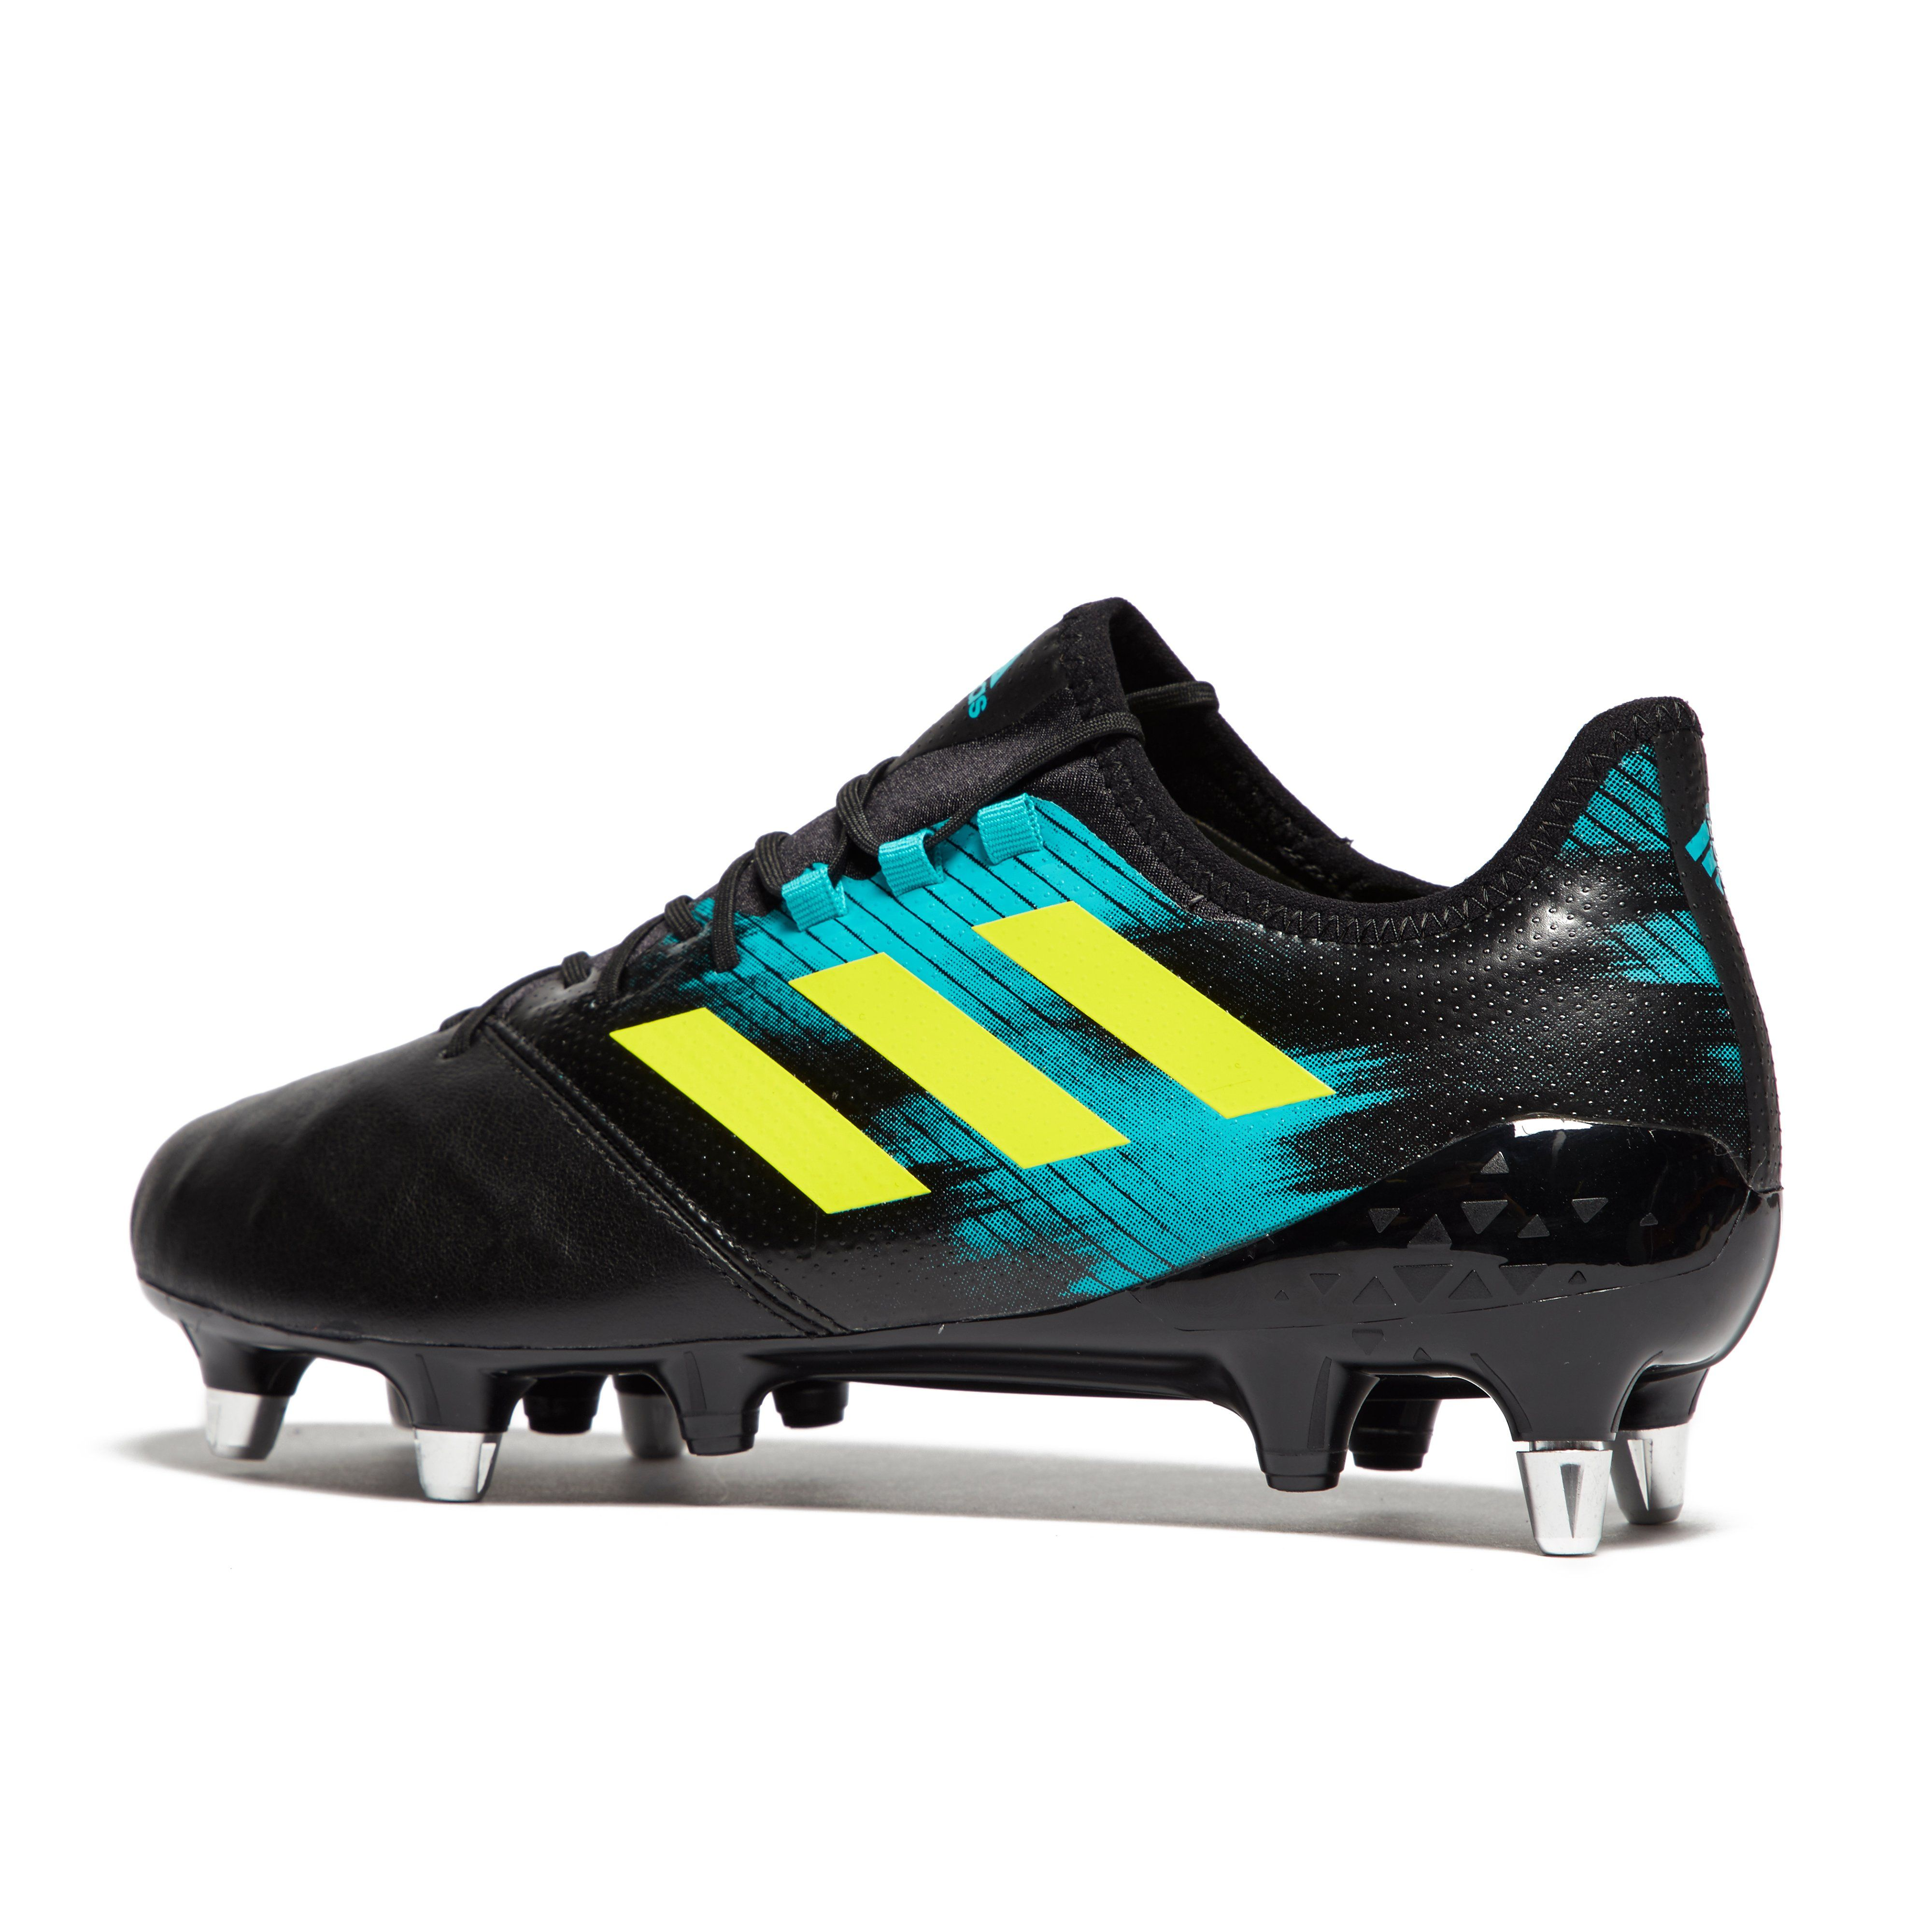 adidas Kakari Light SG Men's Rugby Boots